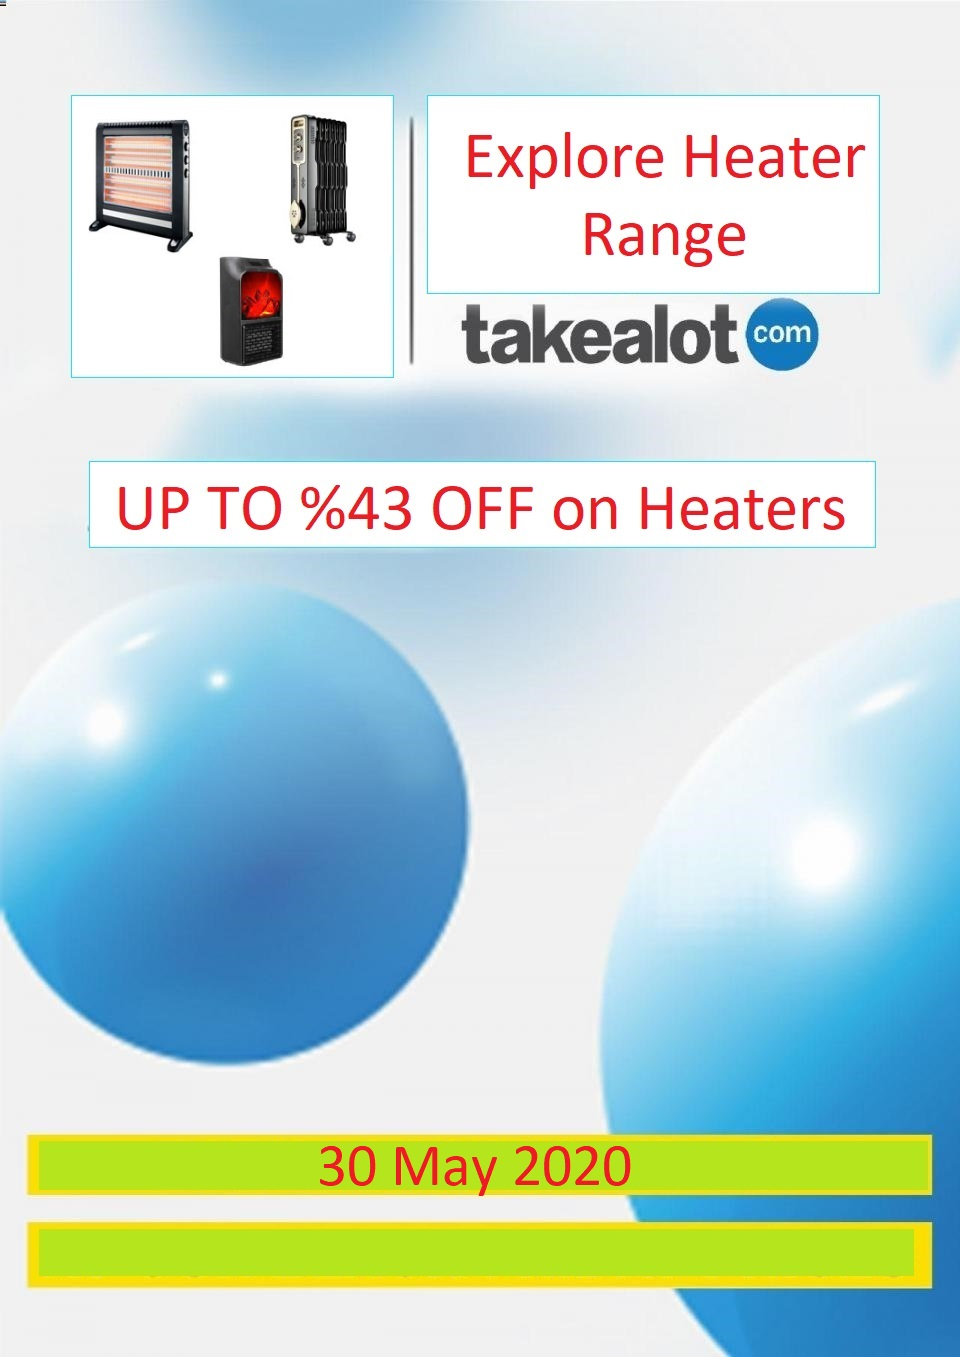 takealot specials heaters 30 may 2020